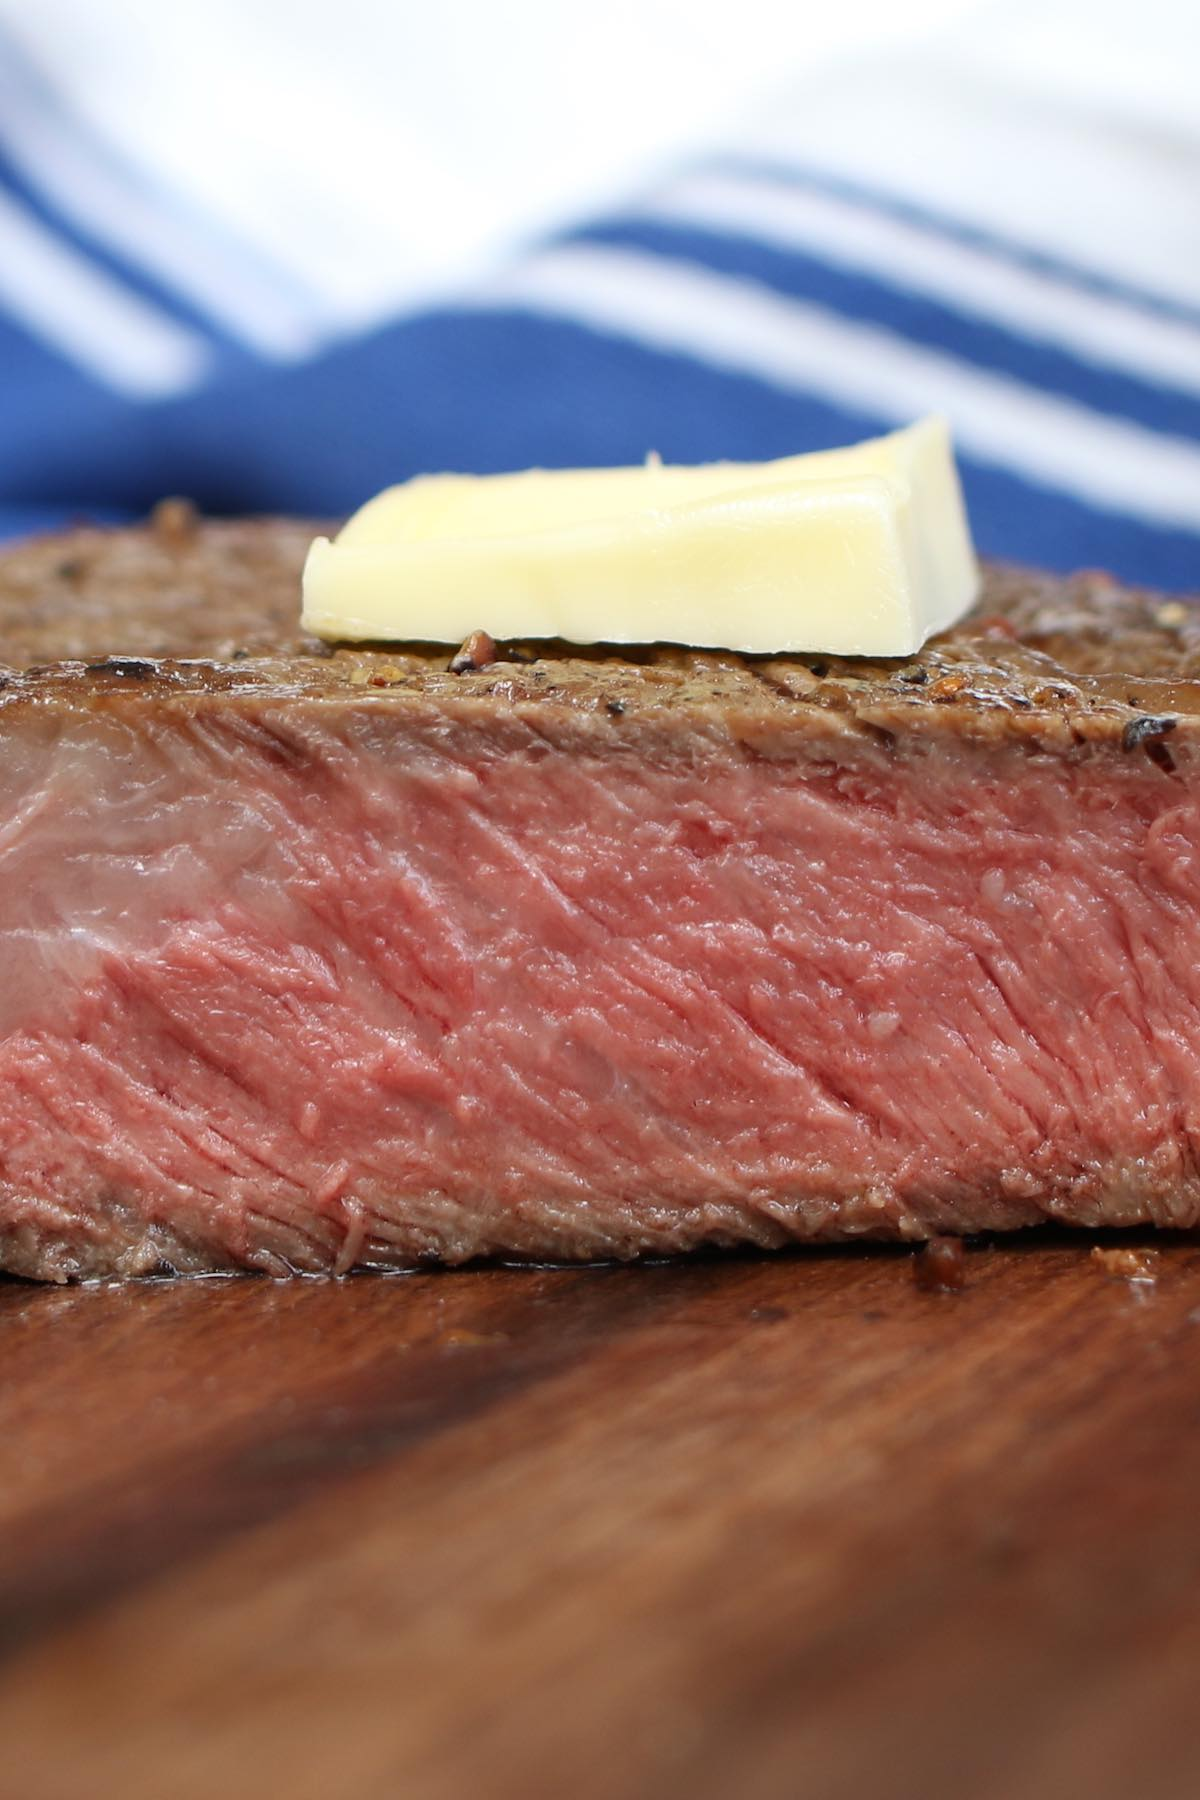 From porterhouse to flank steak, below is a complete guide on what you need to know about the most common types of steak and how to cook each cut of meat properly.